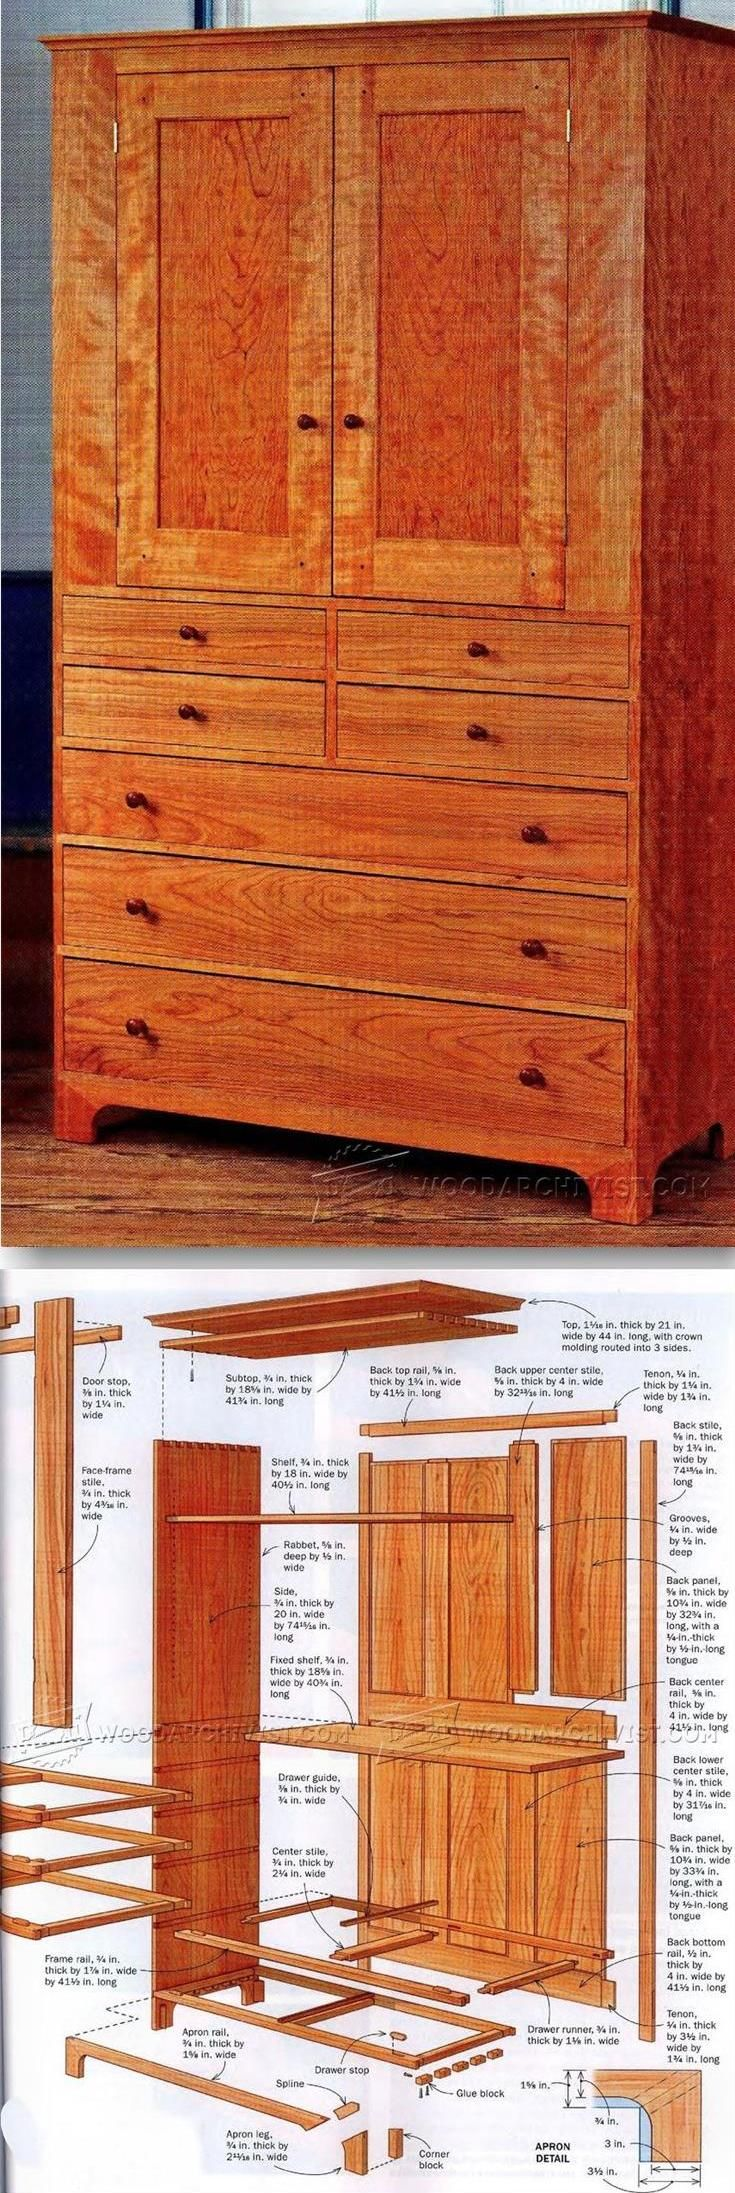 Shaker Cupboard Plans   Furniture Plans And Projects | WoodArchivist.com